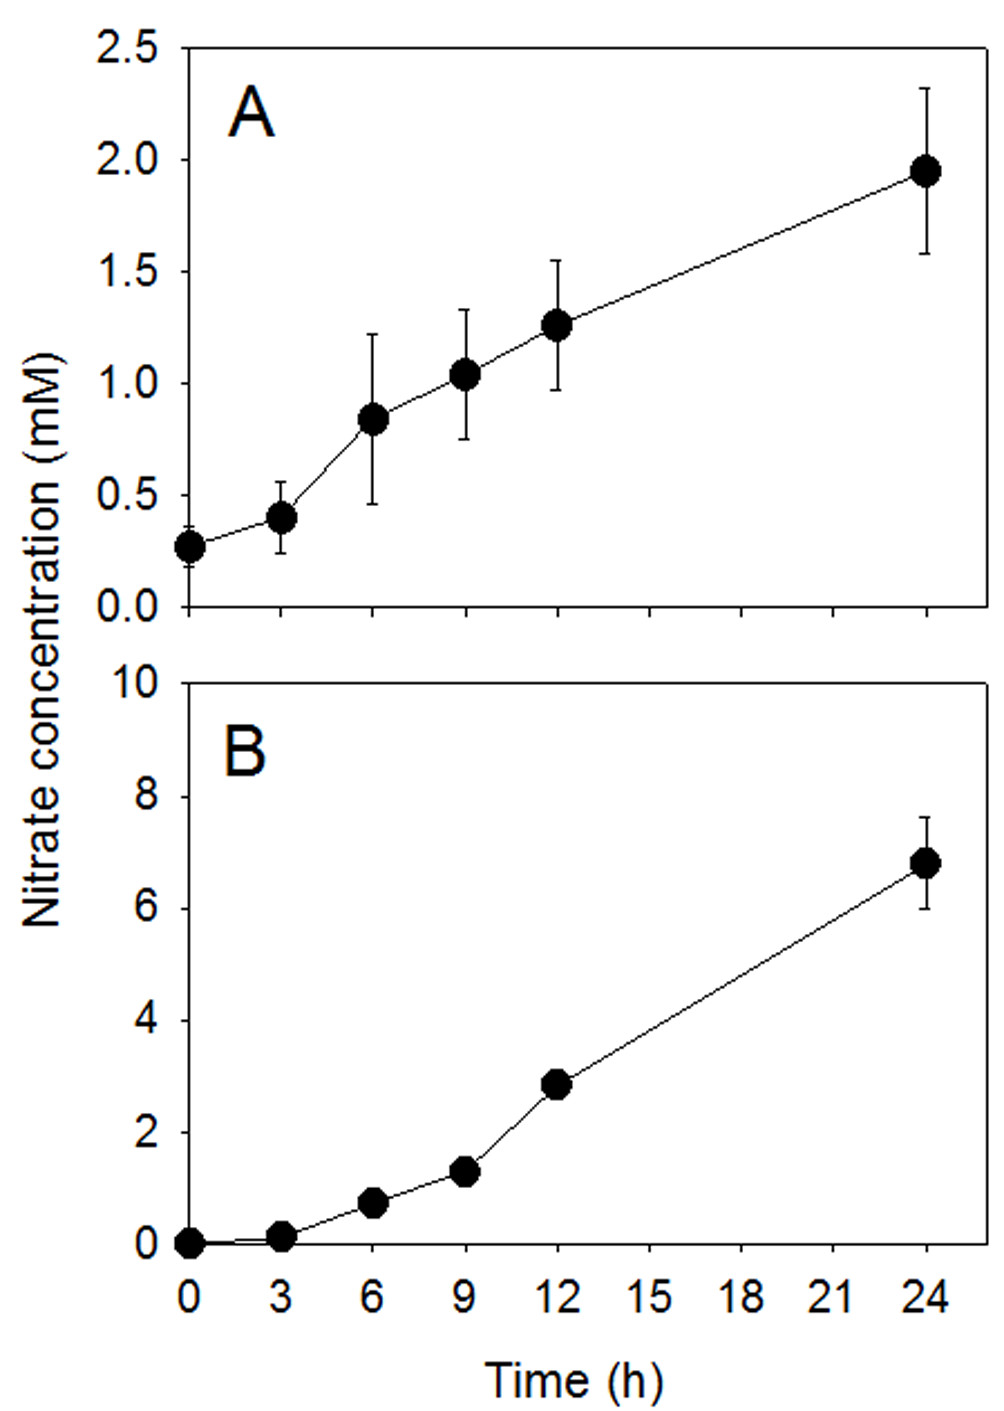 https://static-content.springer.com/image/art%3A10.1186%2F1471-2229-12-66/MediaObjects/12870_2011_Article_1023_Fig2_HTML.jpg